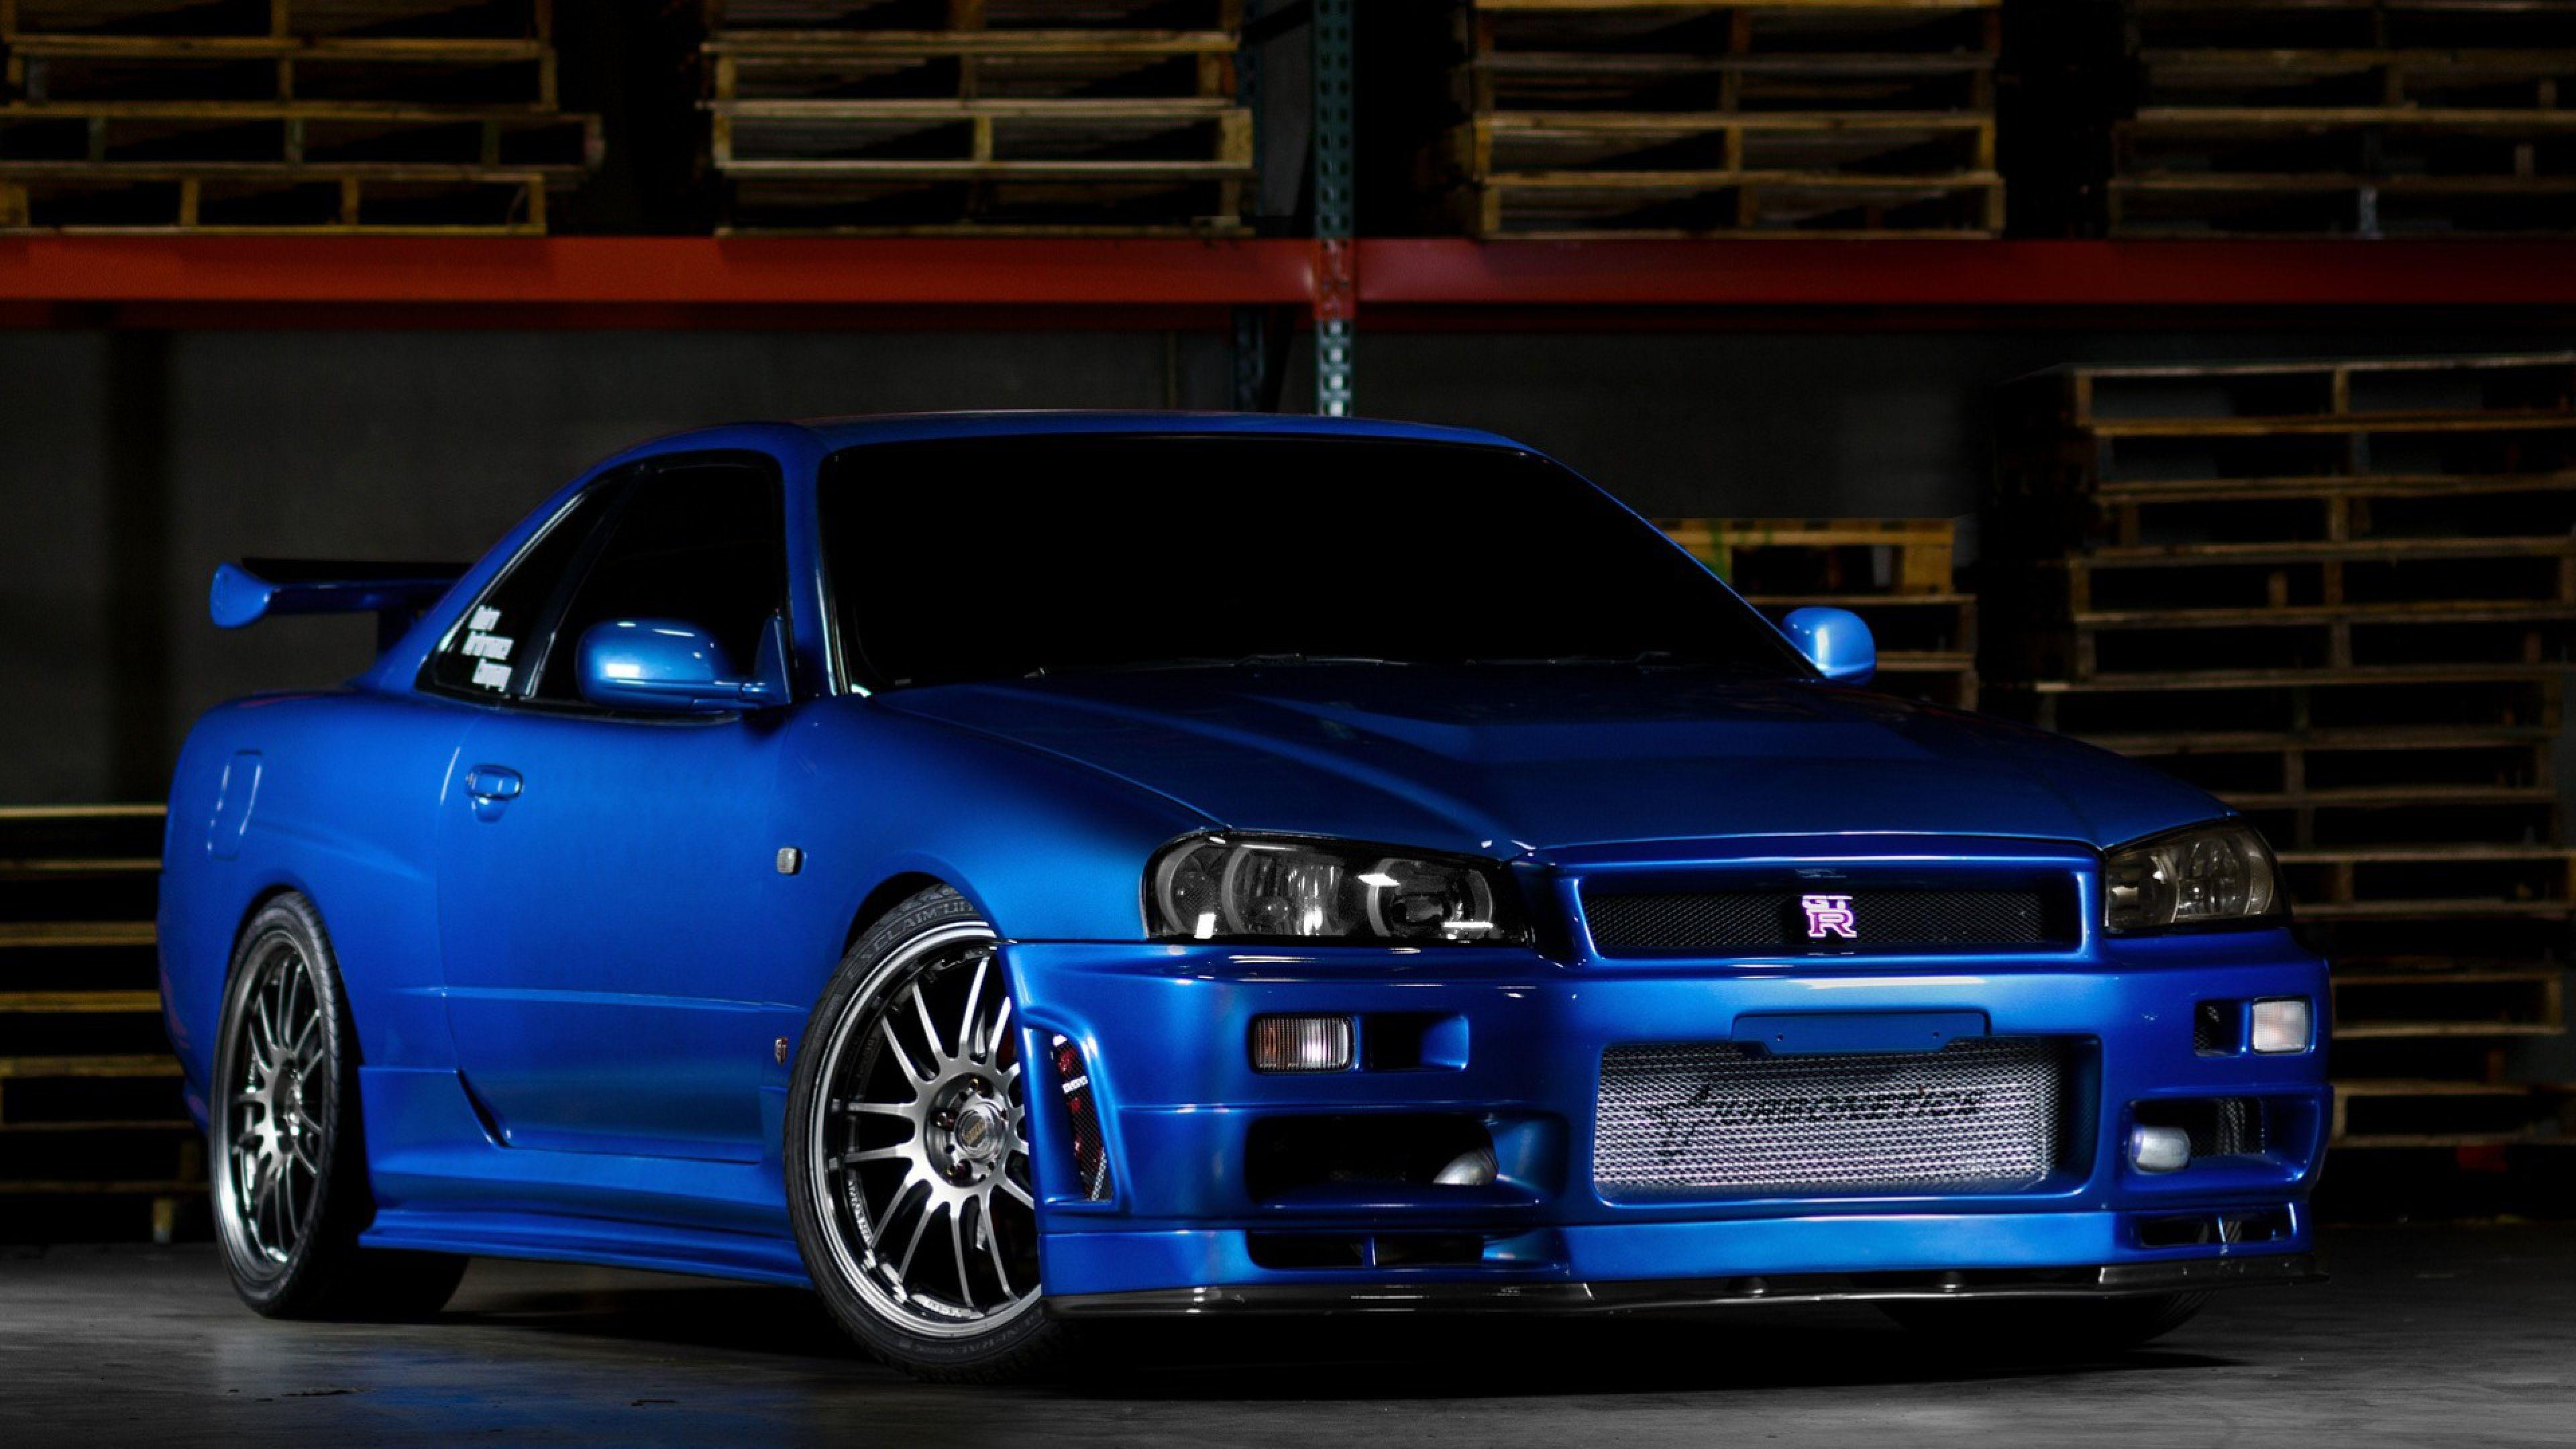 nissan skyline gtr r34 wallpapers hd - wallpaper cave